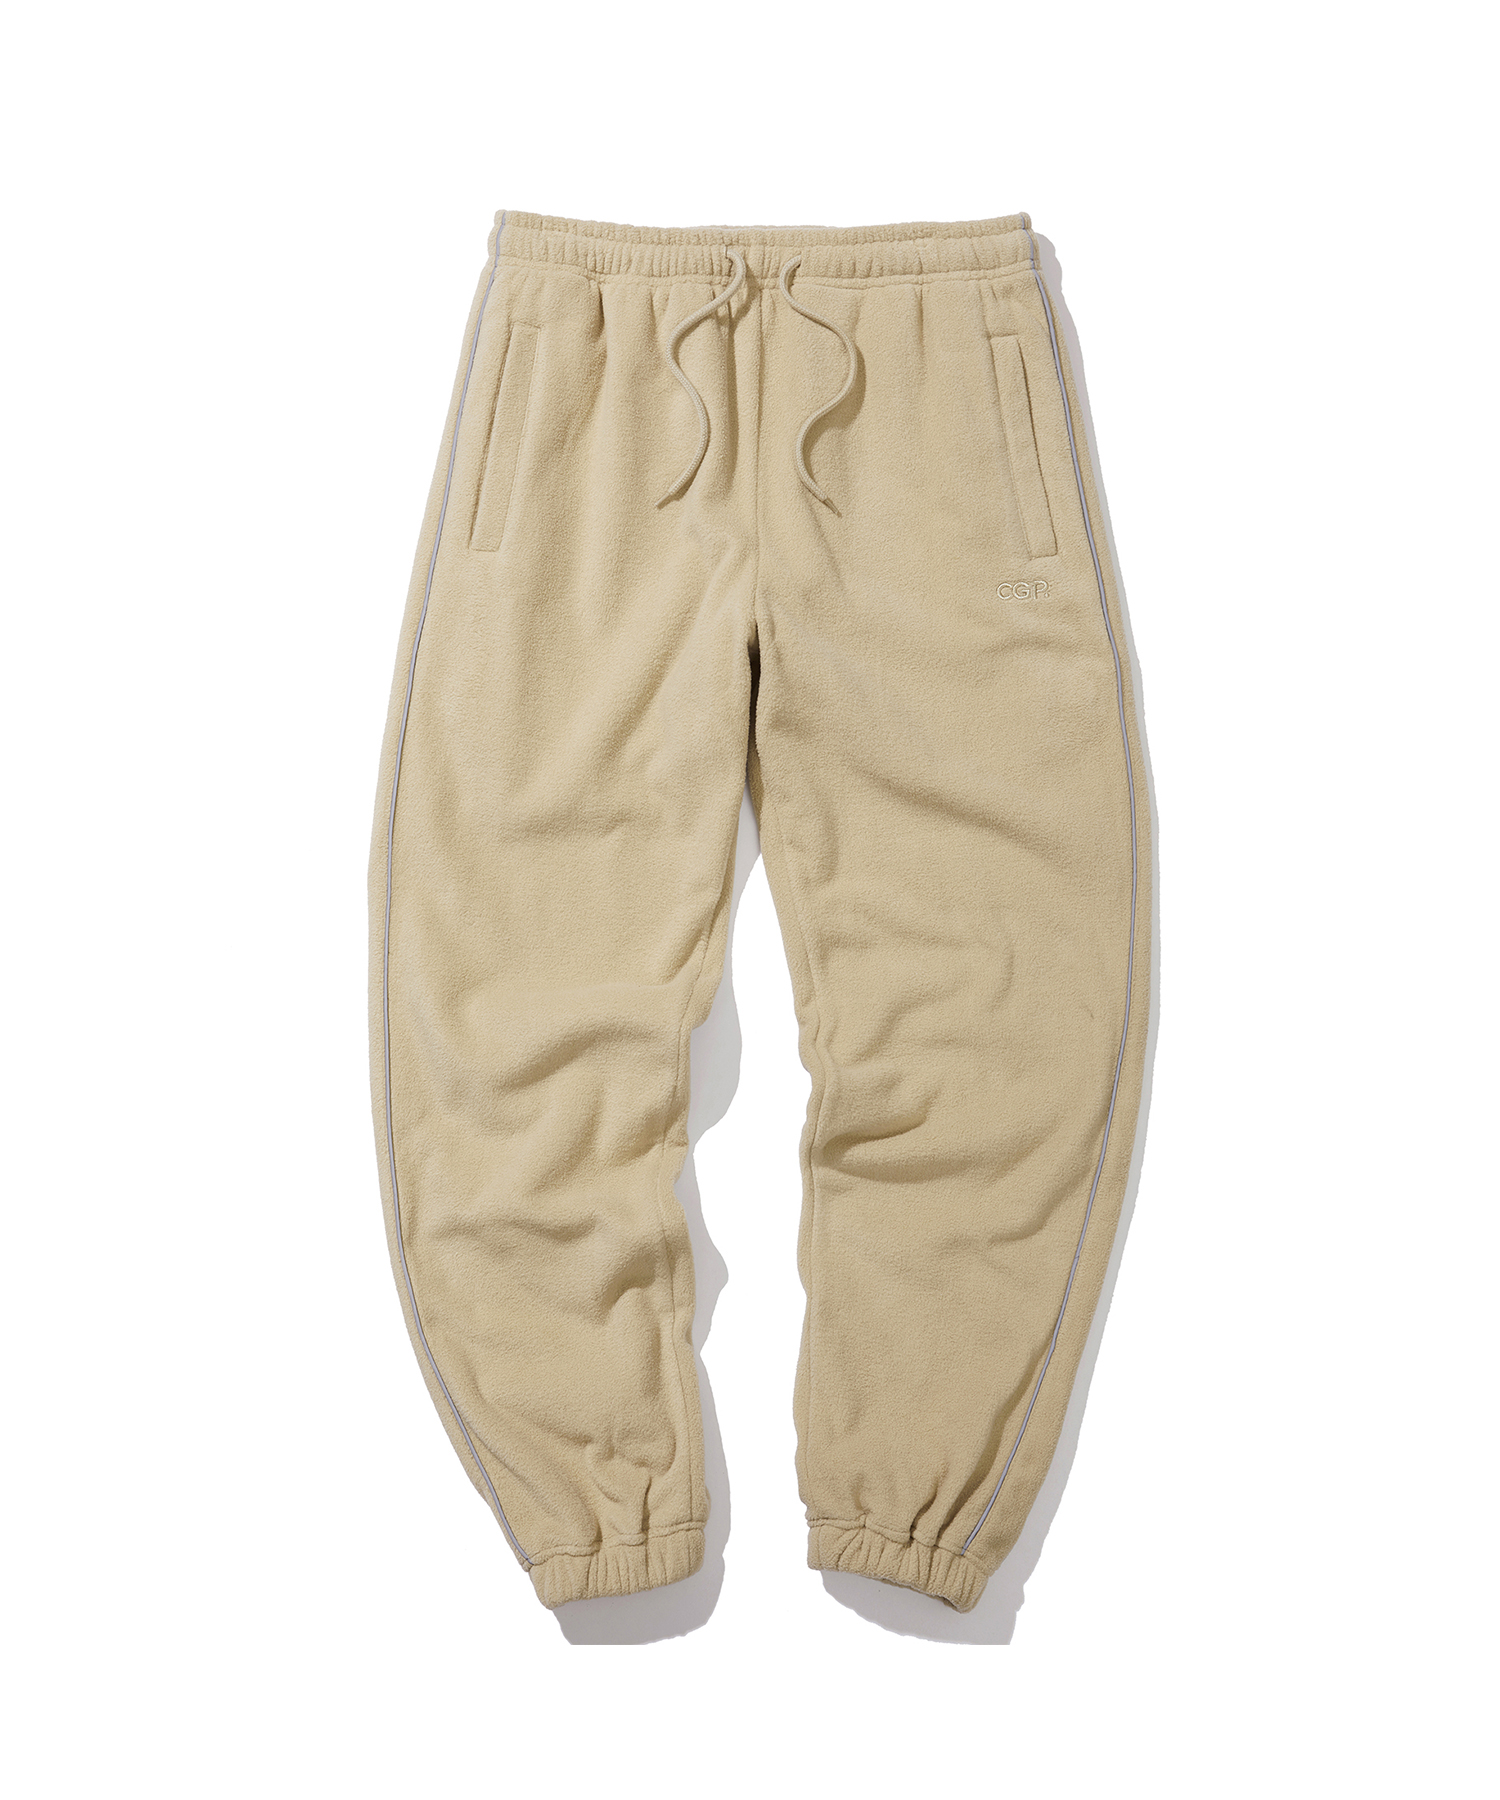 PIPING FLEECE JOGGER PANTS - BE